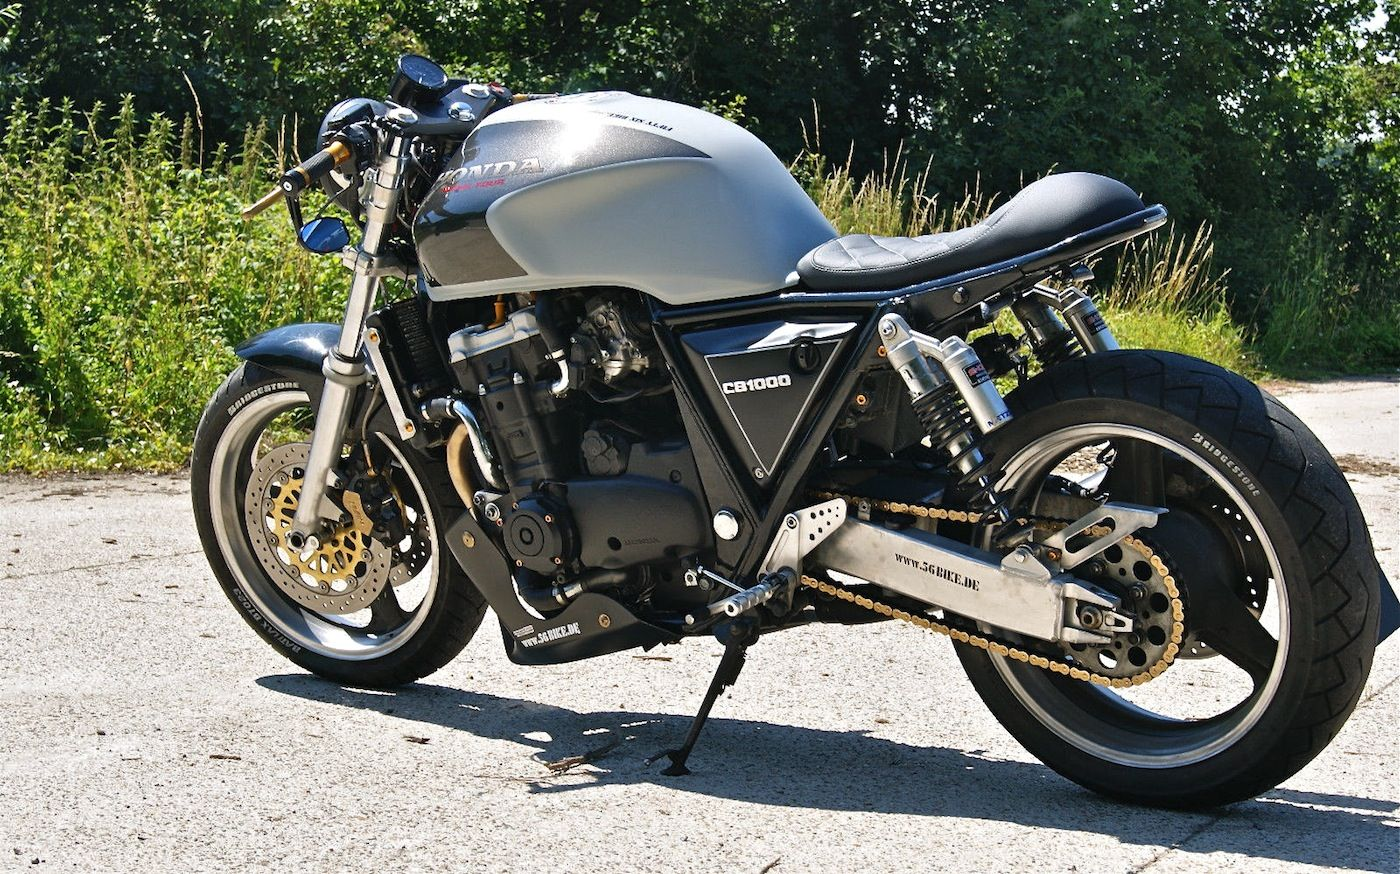 inazuma caf racer the big one honda cb1000 pinterest. Black Bedroom Furniture Sets. Home Design Ideas